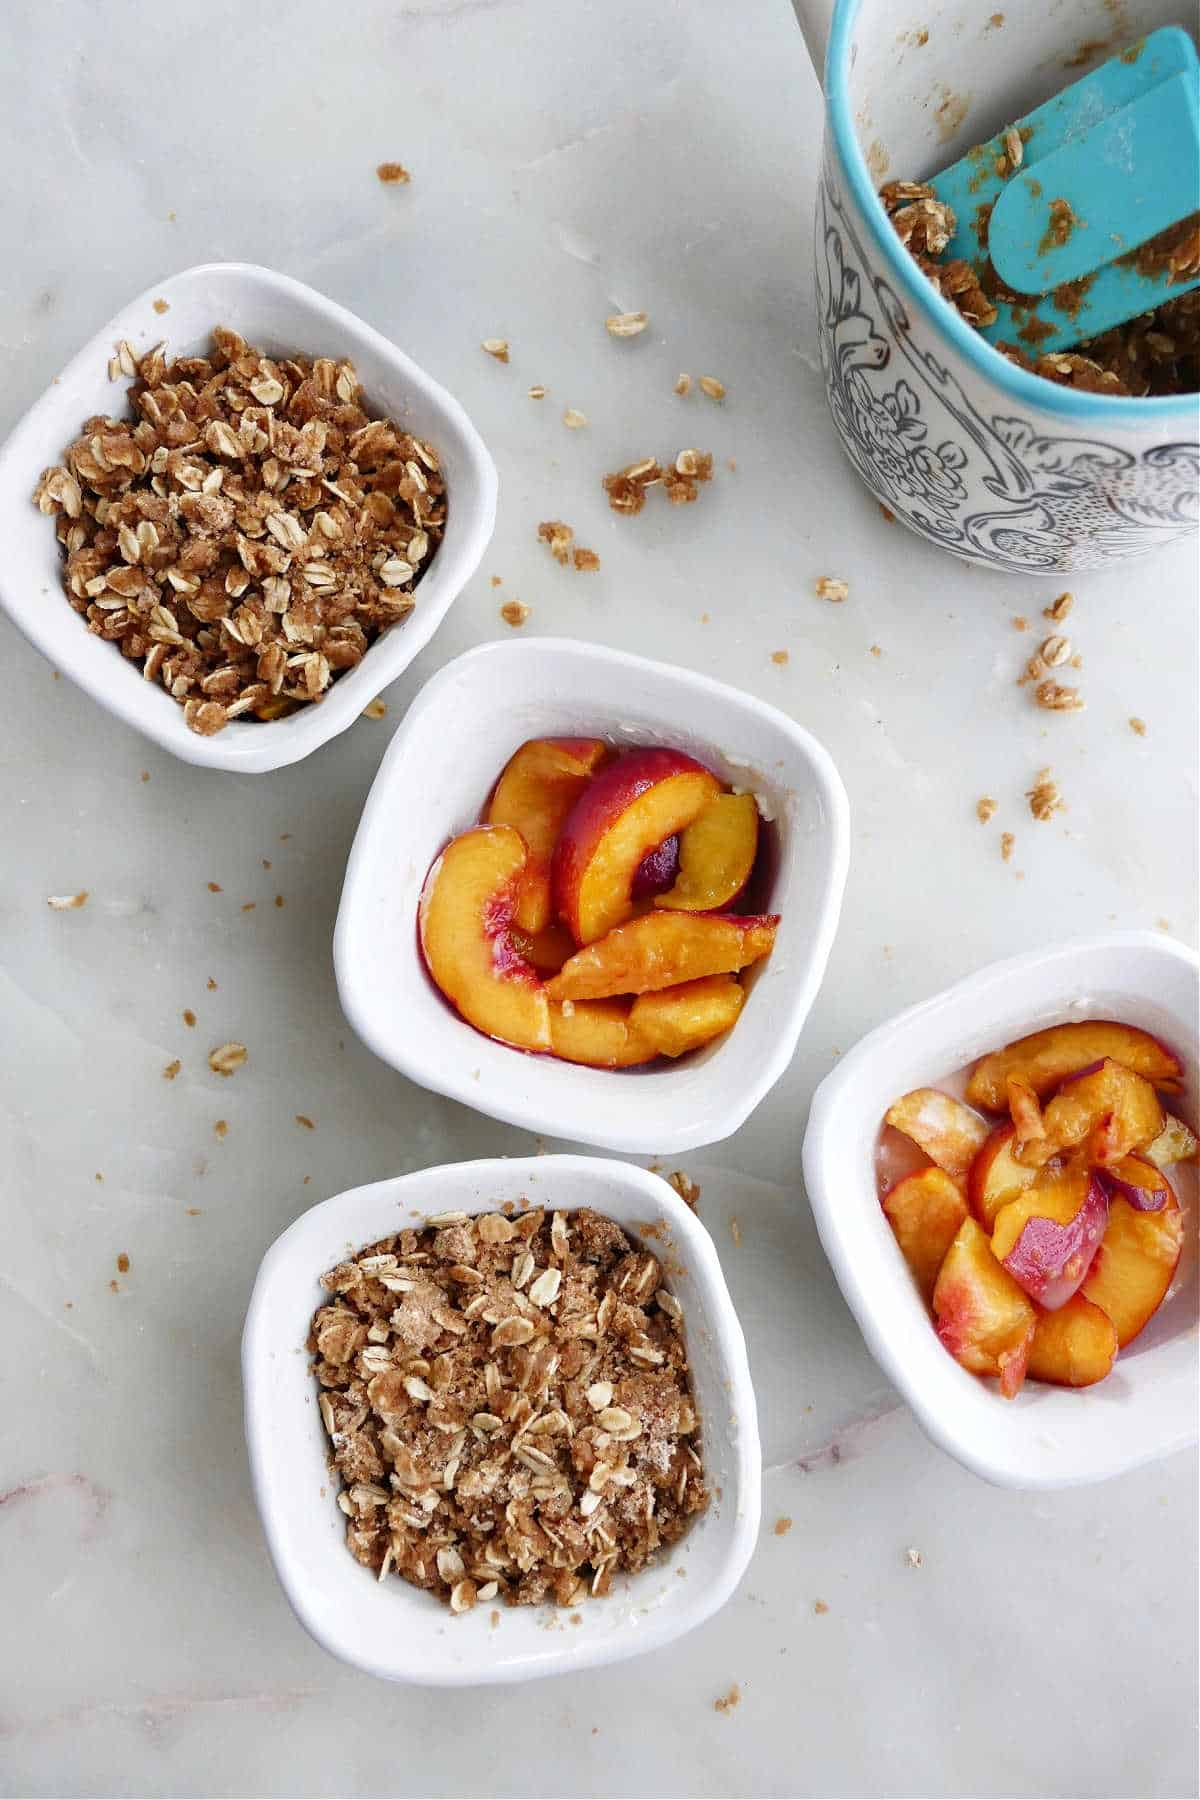 four individual peach crisps next to each other on a counter being prepared to bake